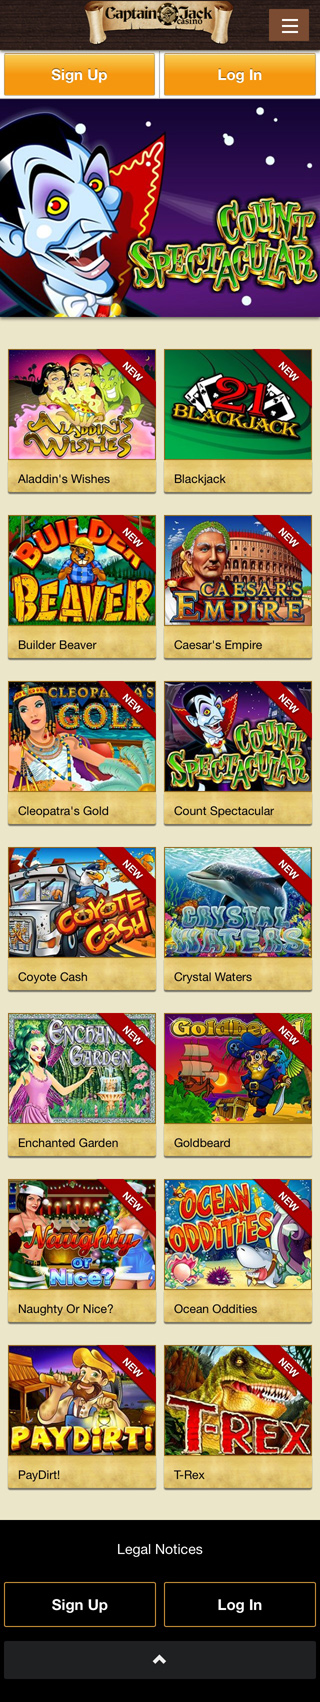 captain jack casino mobile